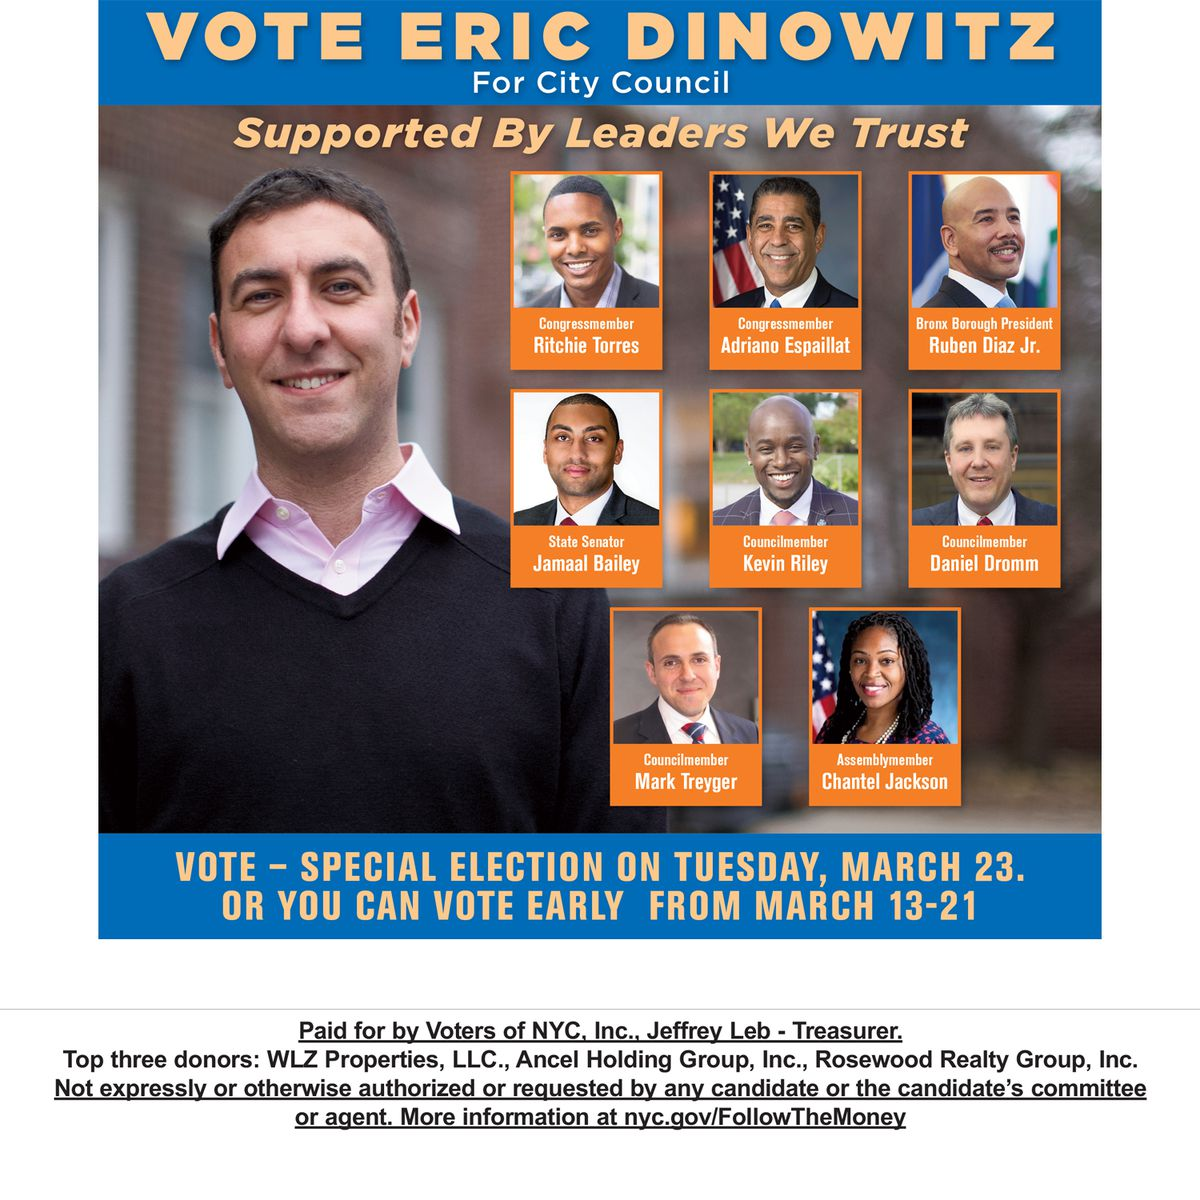 The independent group Voters of NYC, Inc., paid for a flyer promoting Eric Dinowitz' Bronx City Council run.